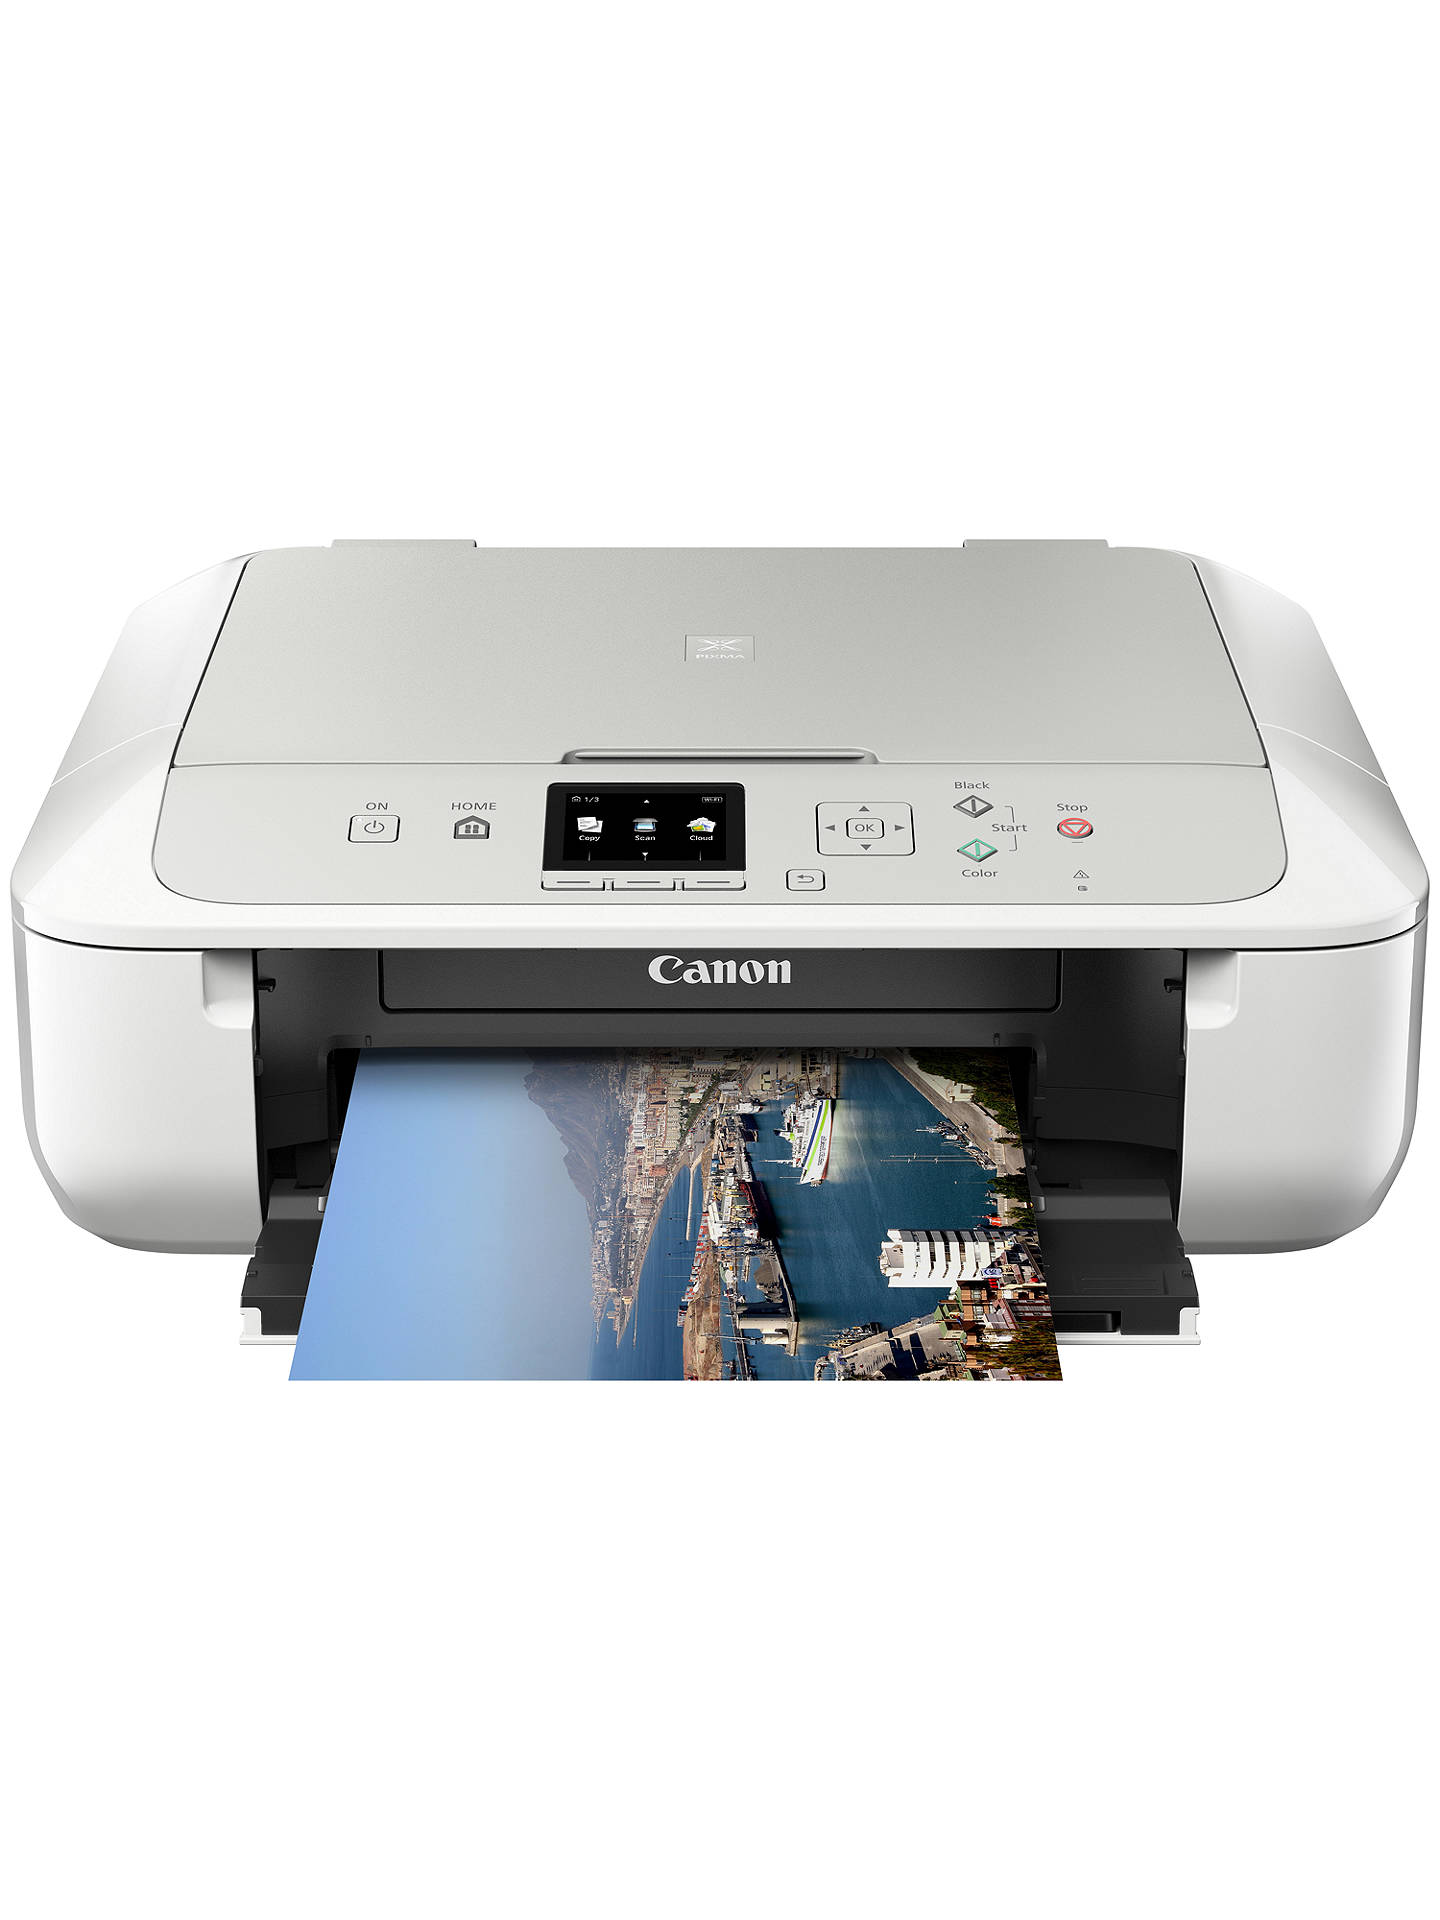 how to connect my pixma printer to wifi